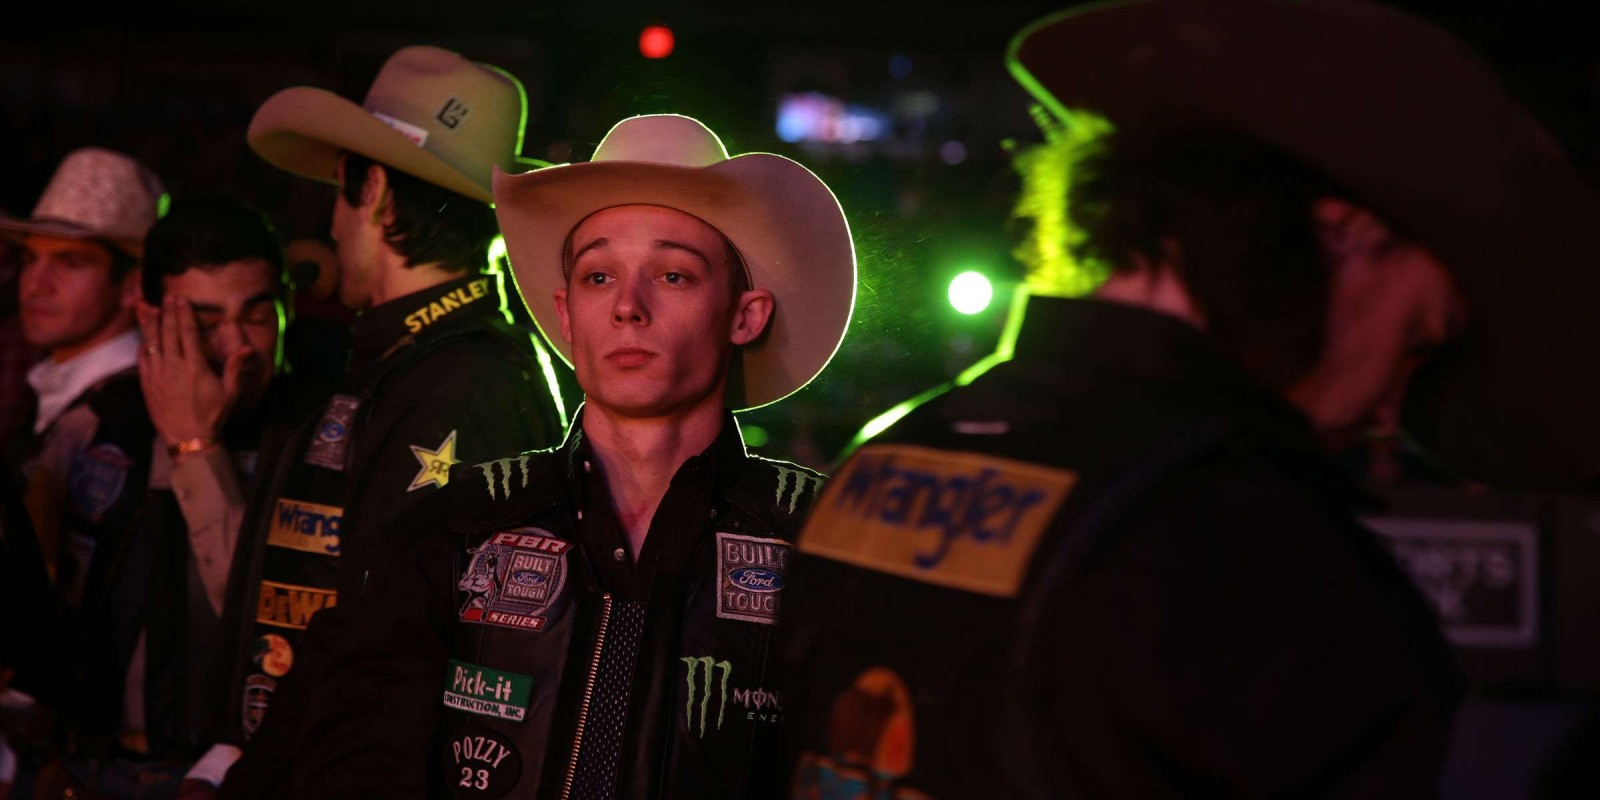 Gage Gay in the opening during the third round of the Chicago Built Ford Tough series PBR